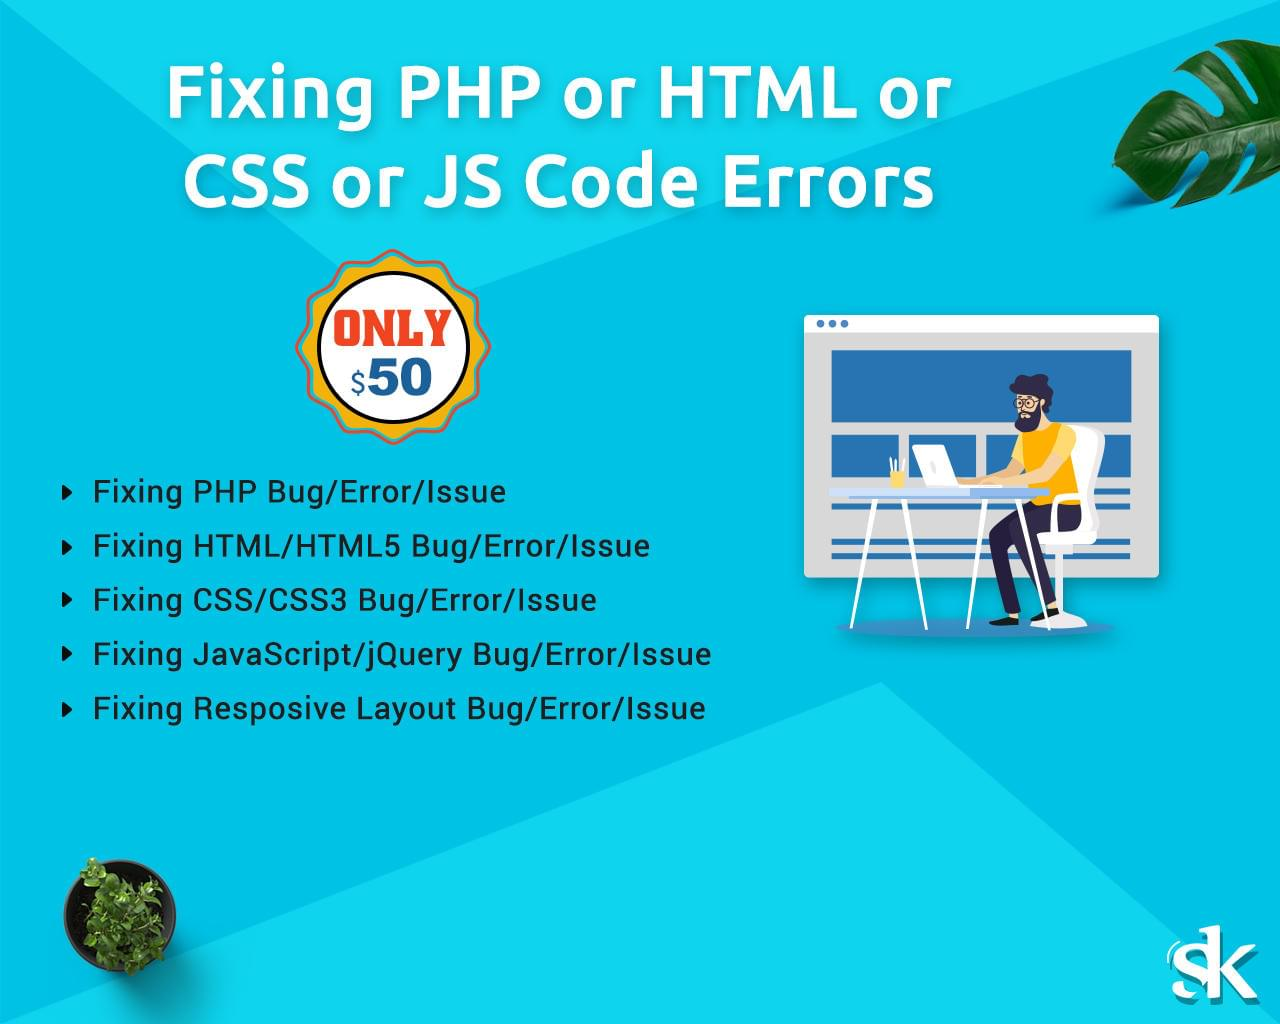 Fixing PHP or HTML or CSS or JS Code Errors by SK-Web-Solutions - 113009